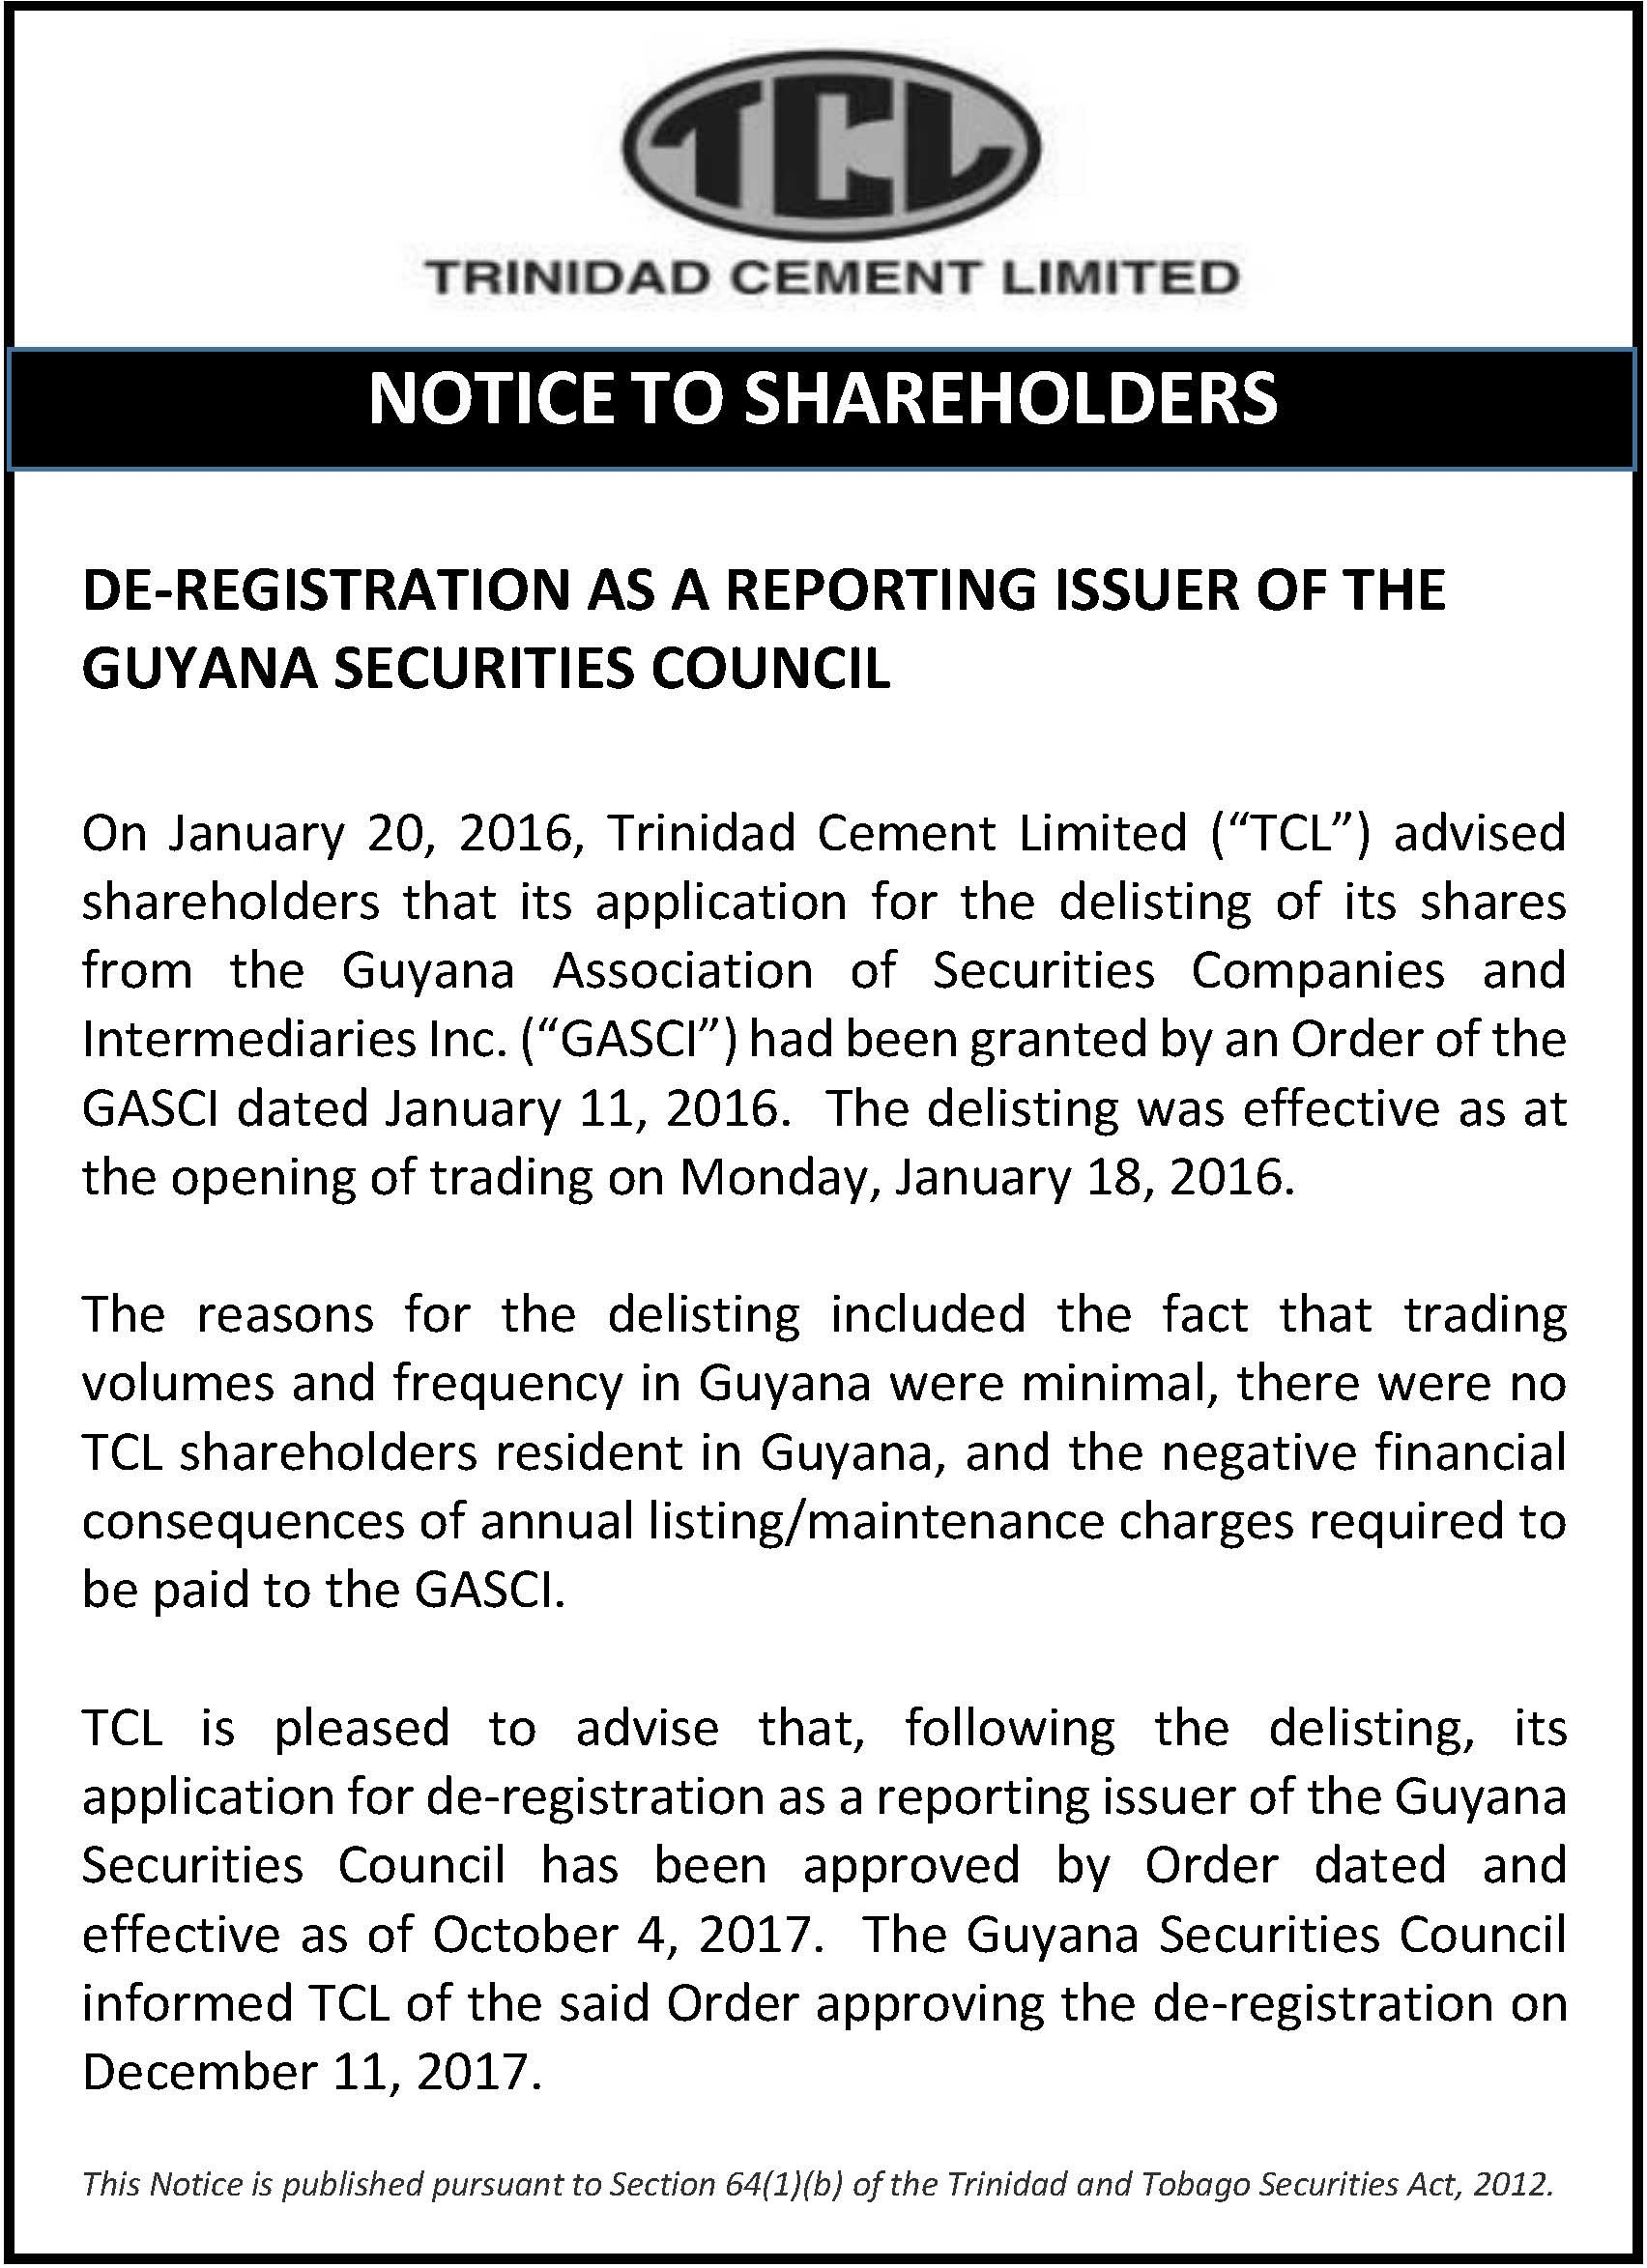 De-registration-from-GASCI---December-14-2017